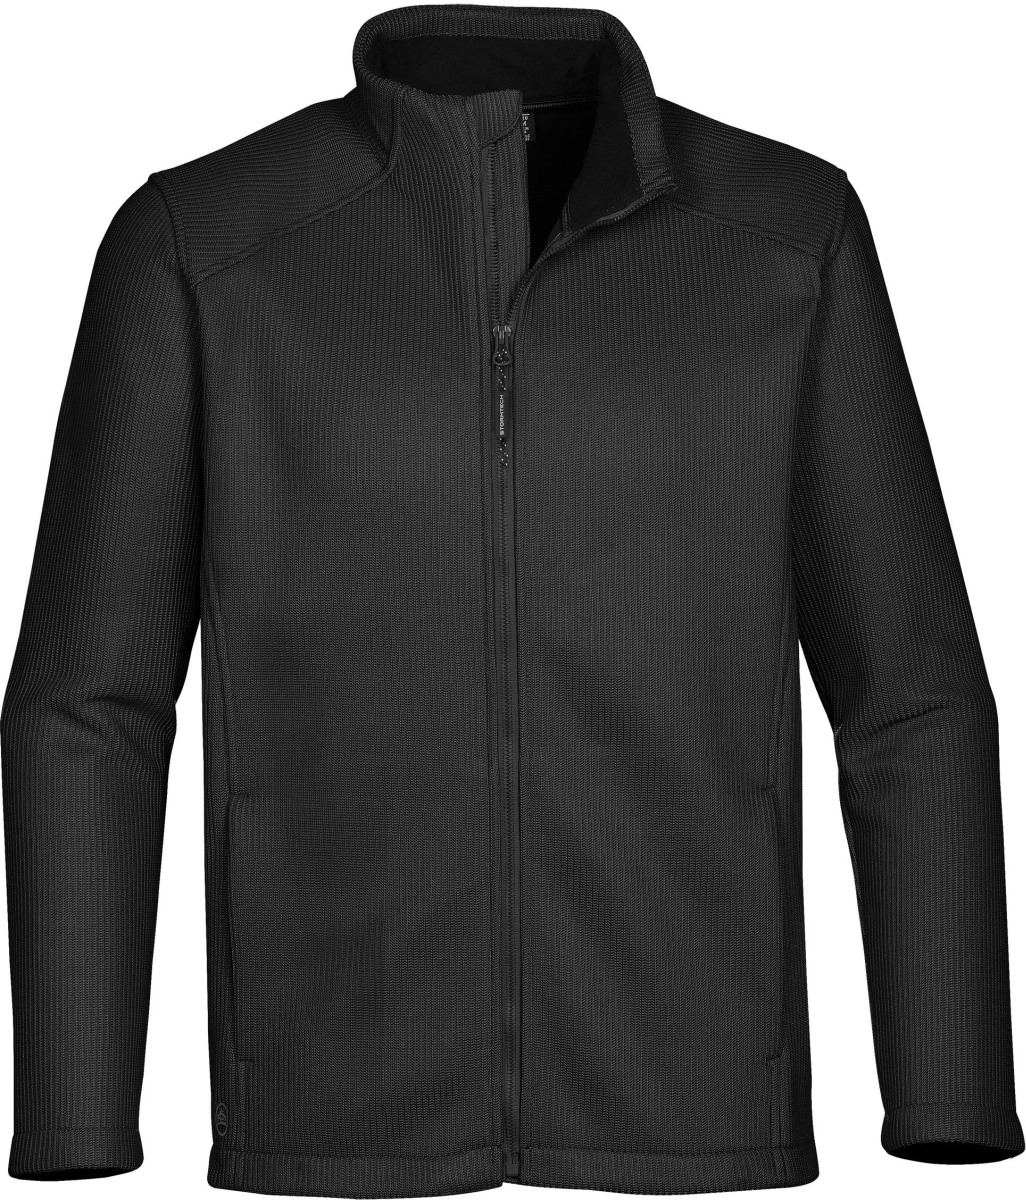 Men's Nordic Bonded Knit Jacket-StormTech